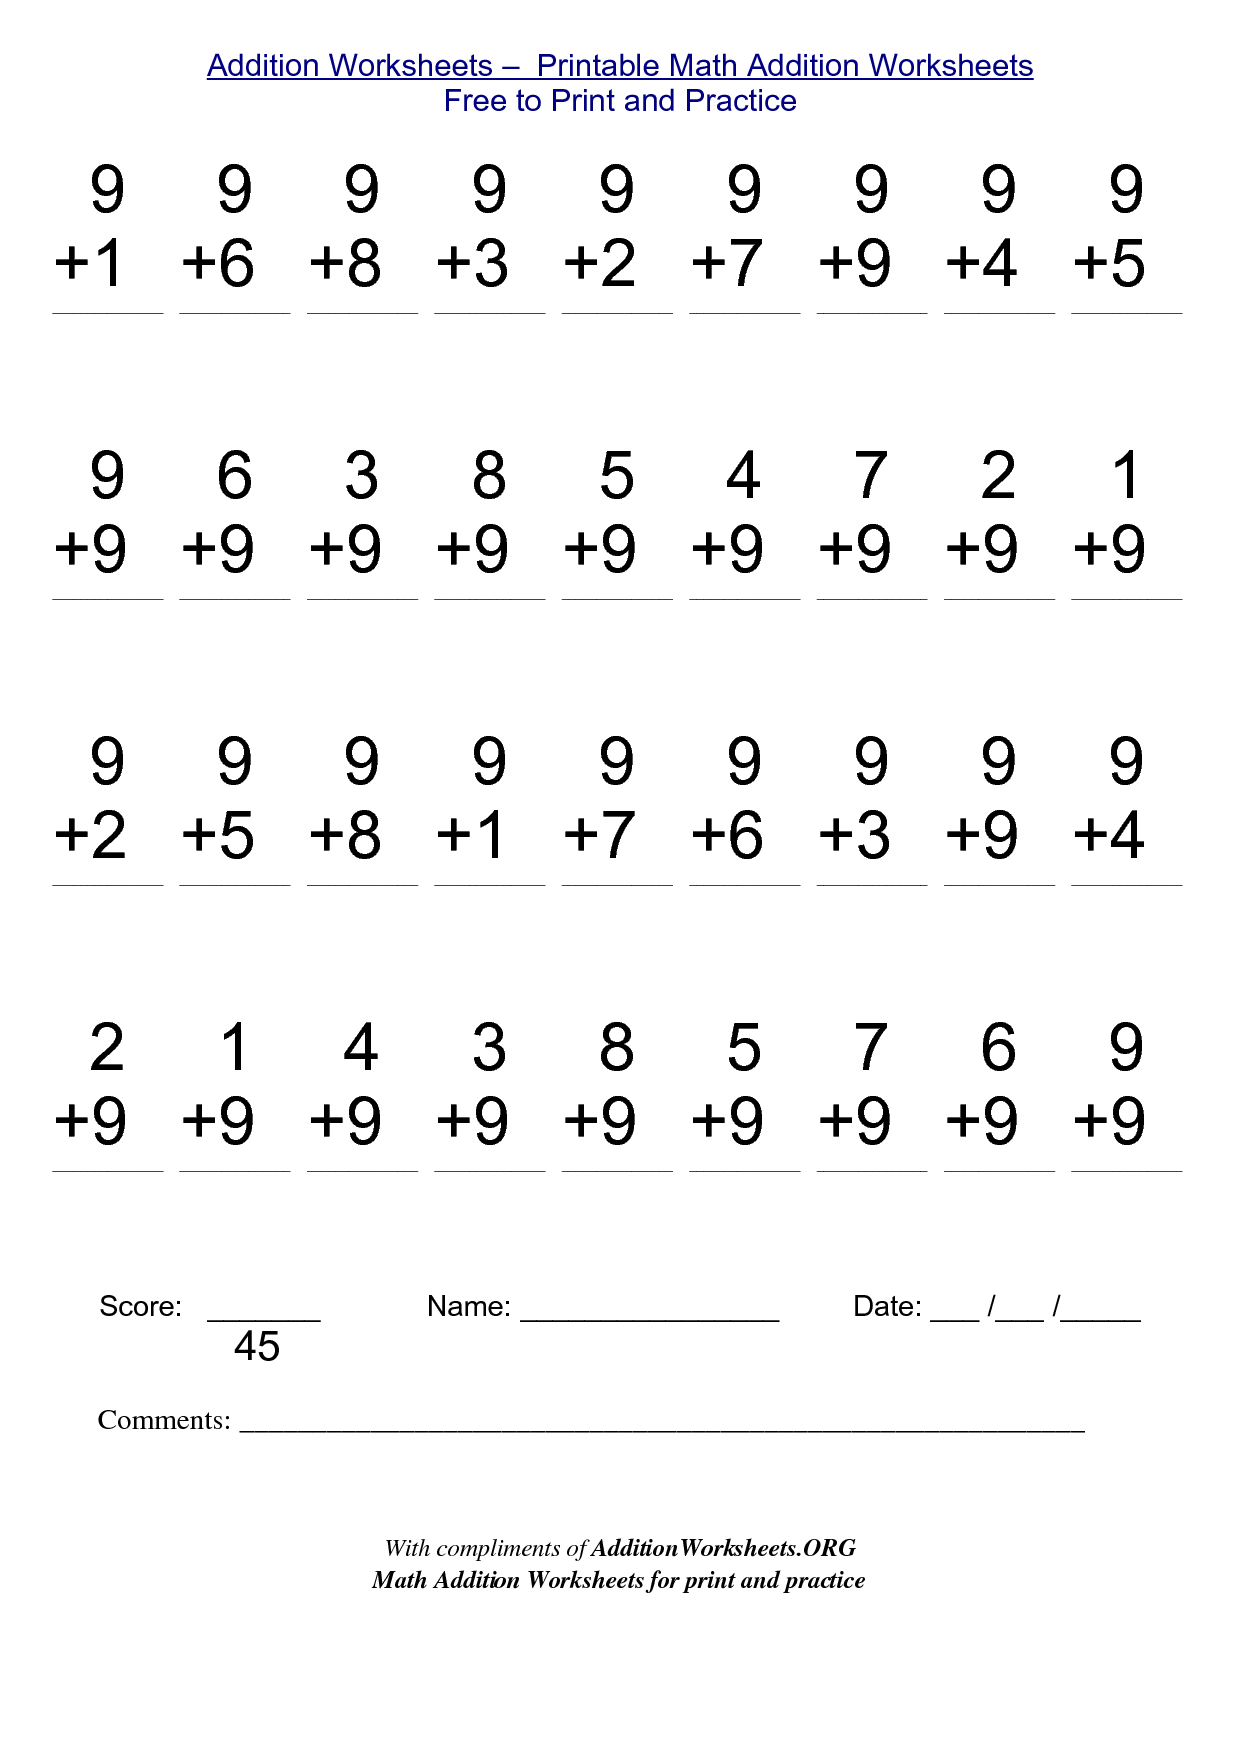 nd grade stuff to print  addition worksheets  printable math  nd grade stuff to print  addition worksheets  printable math addition  worksheets free to print